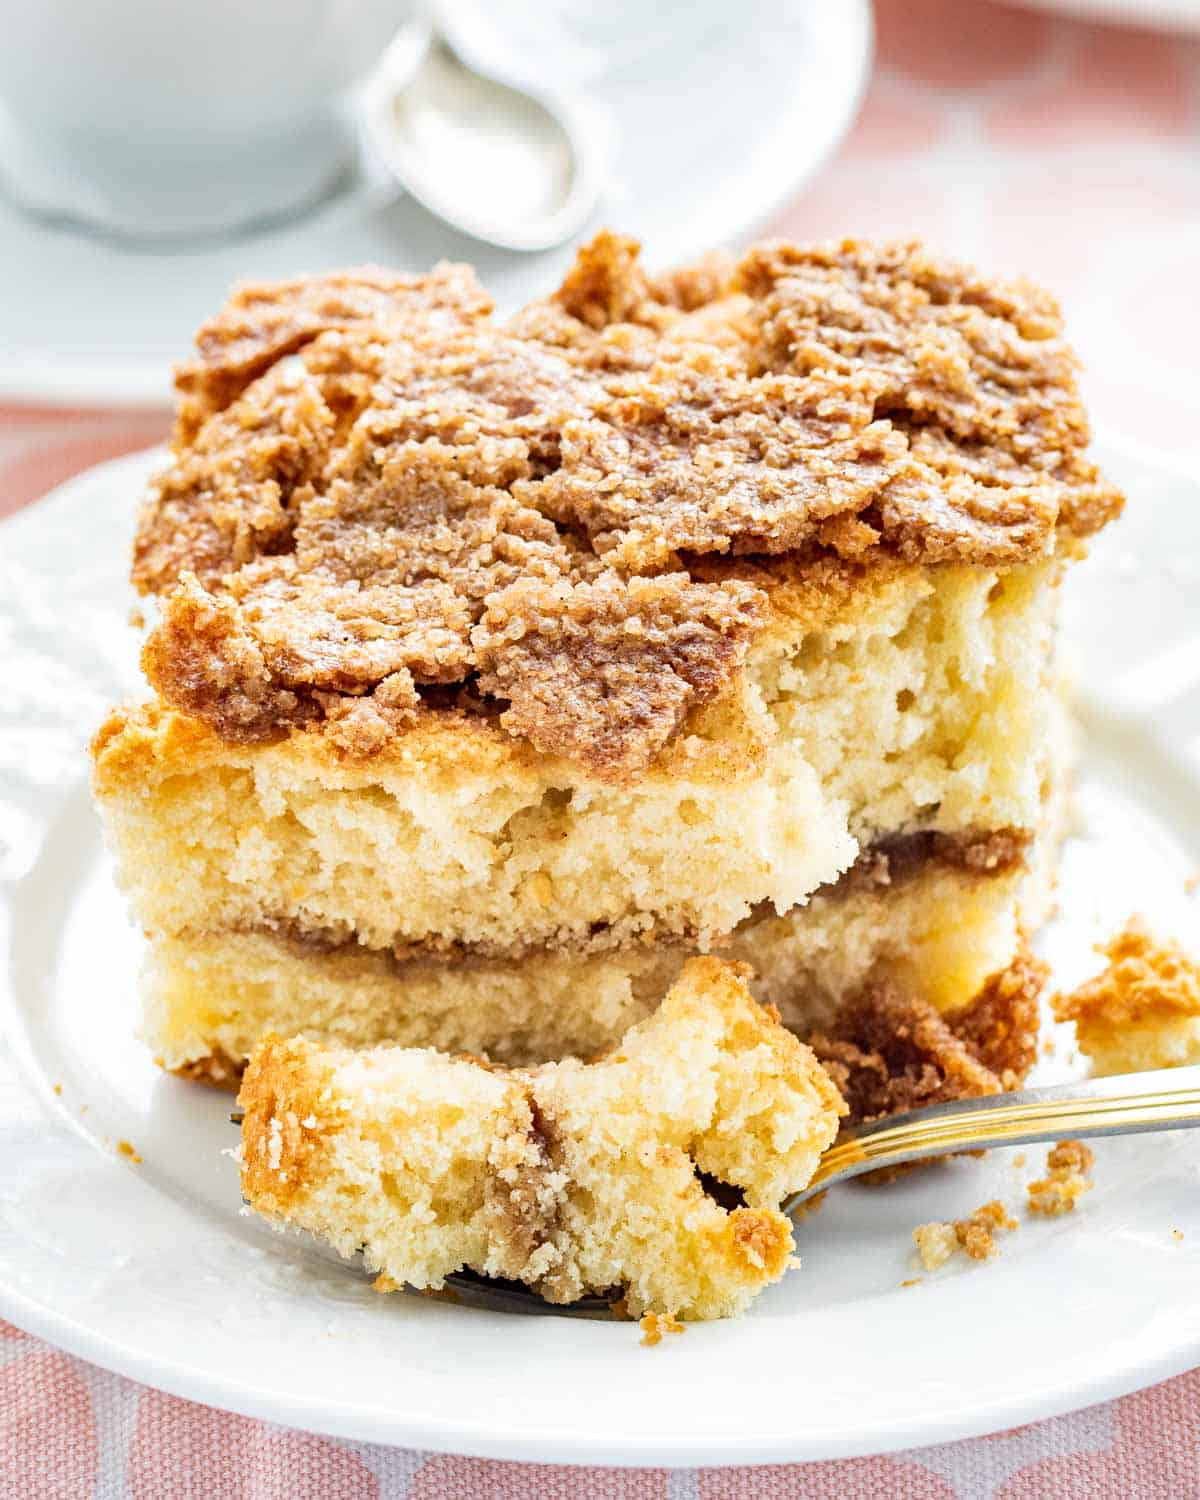 a full slice of coffee cake on a white plate with a fork and a bite taken out of it